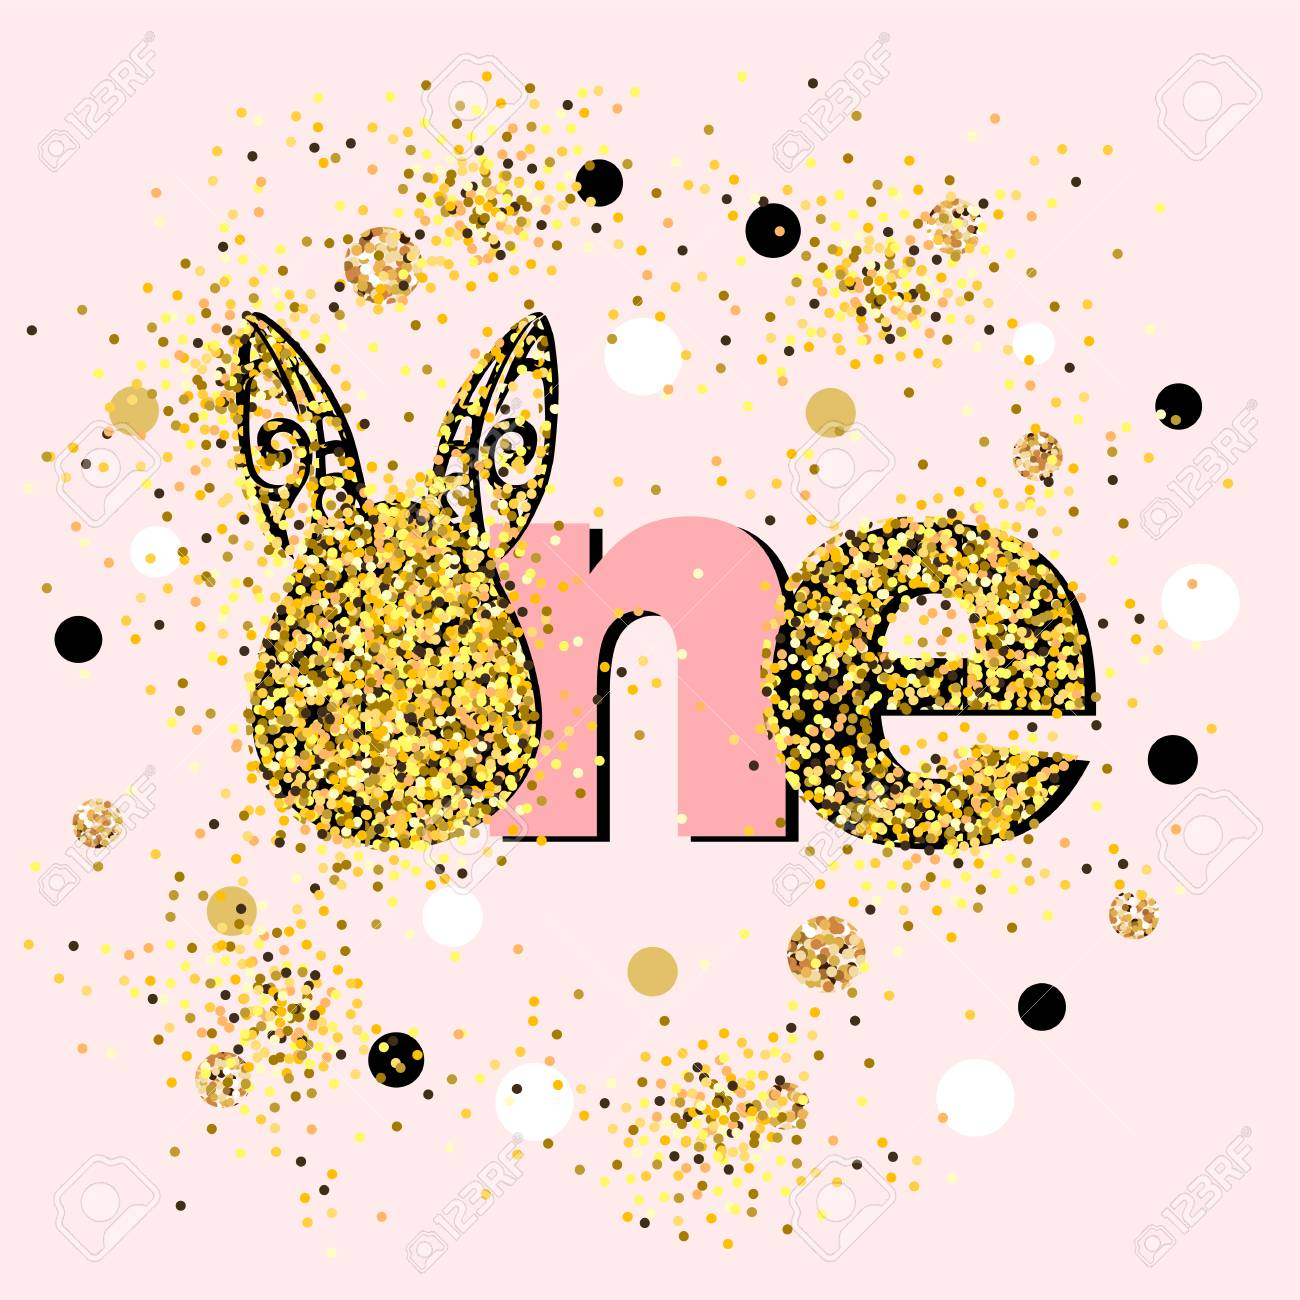 Vector Illustration Golden One With Bunny Ears Template For